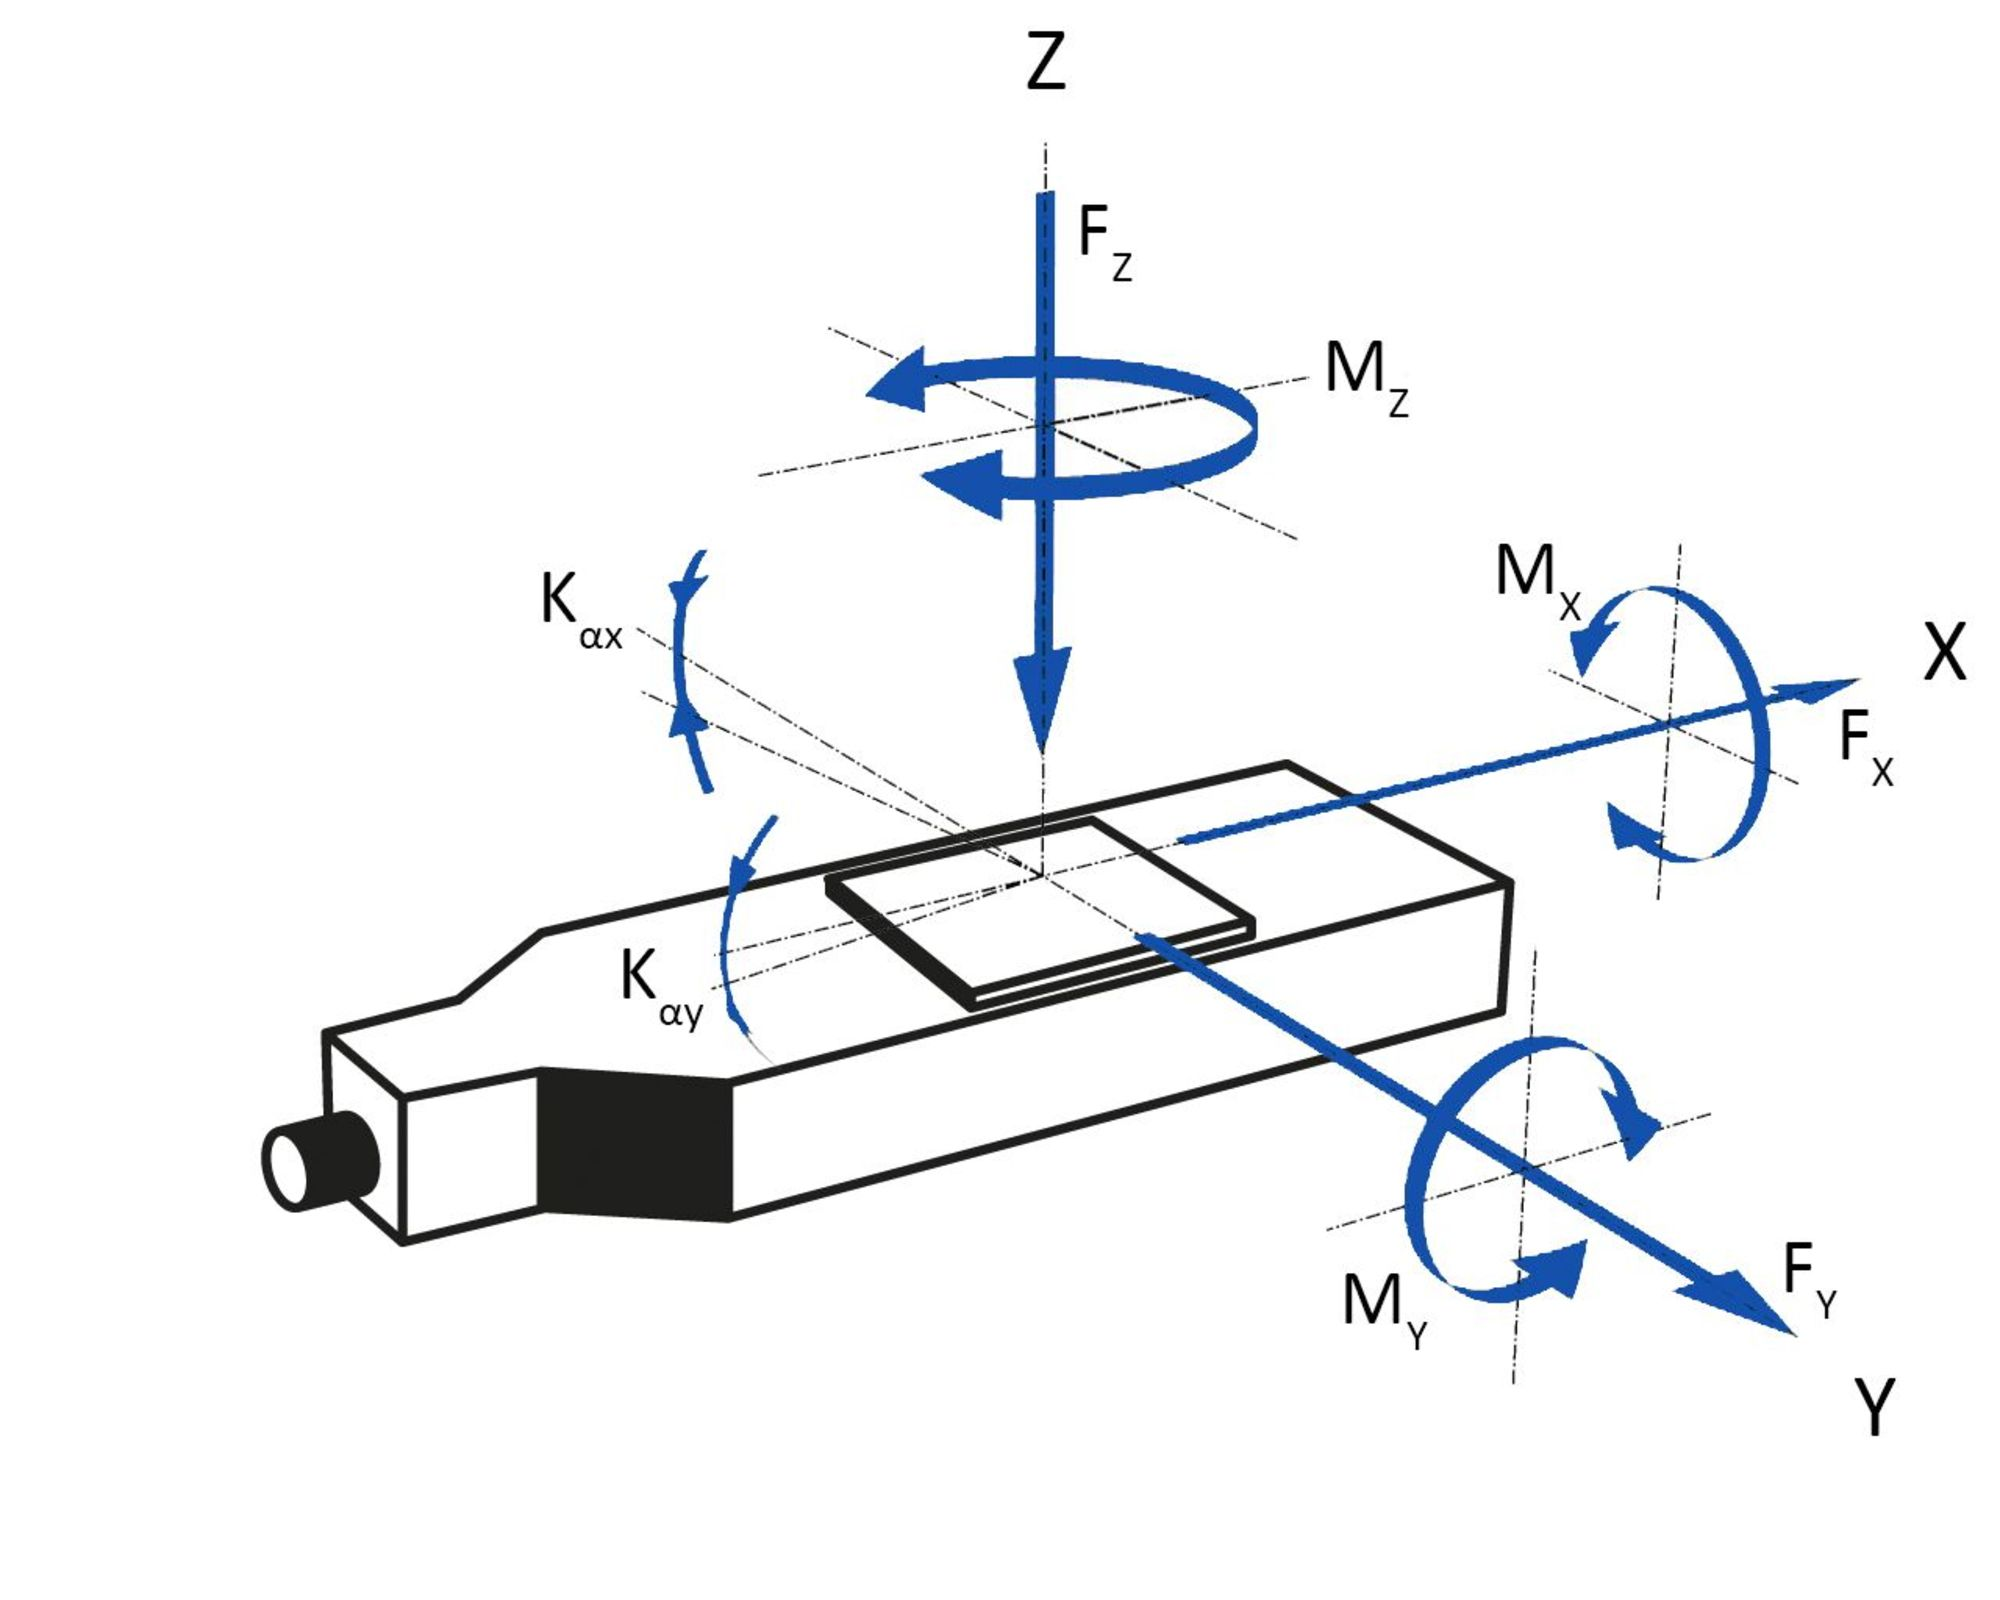 Csm Linear Stage Vectors Drawing B Cef on Light Switches Types